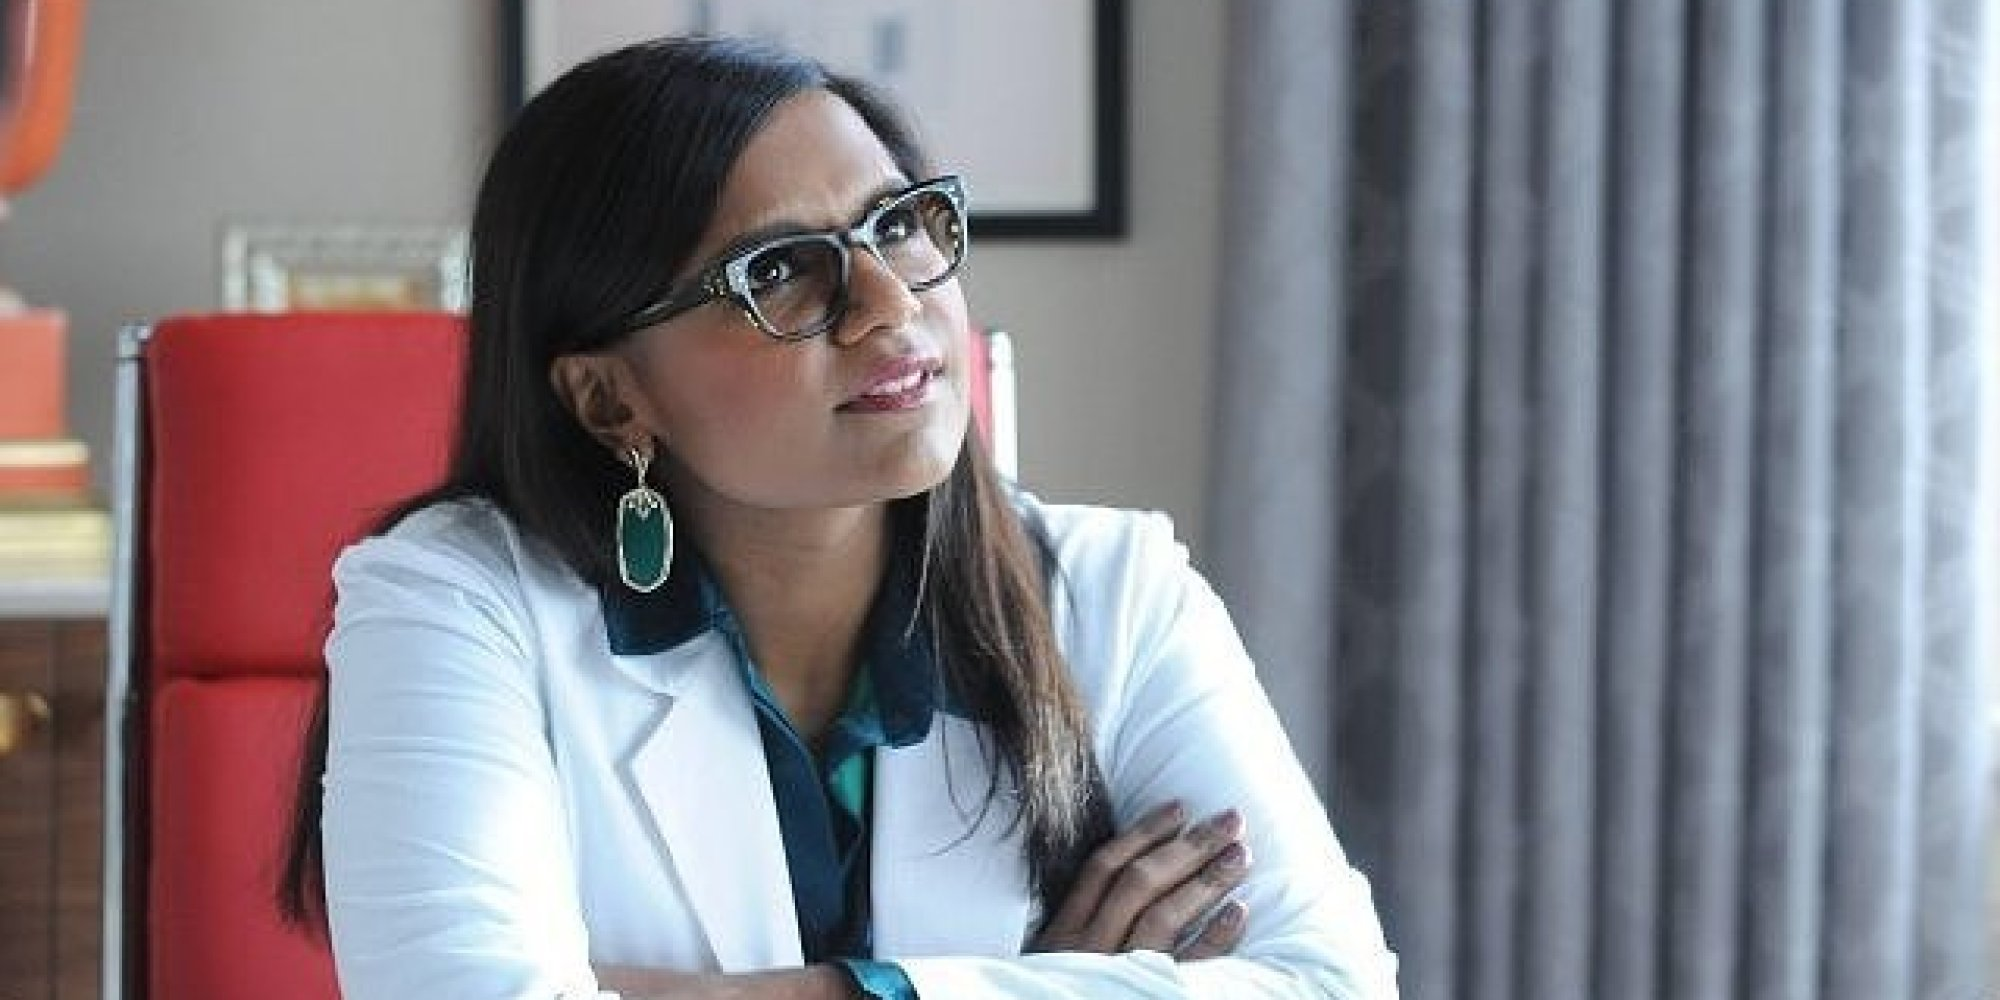 o-MINDY-LAHIRI-THE-MINDY-PROJECT-facebook